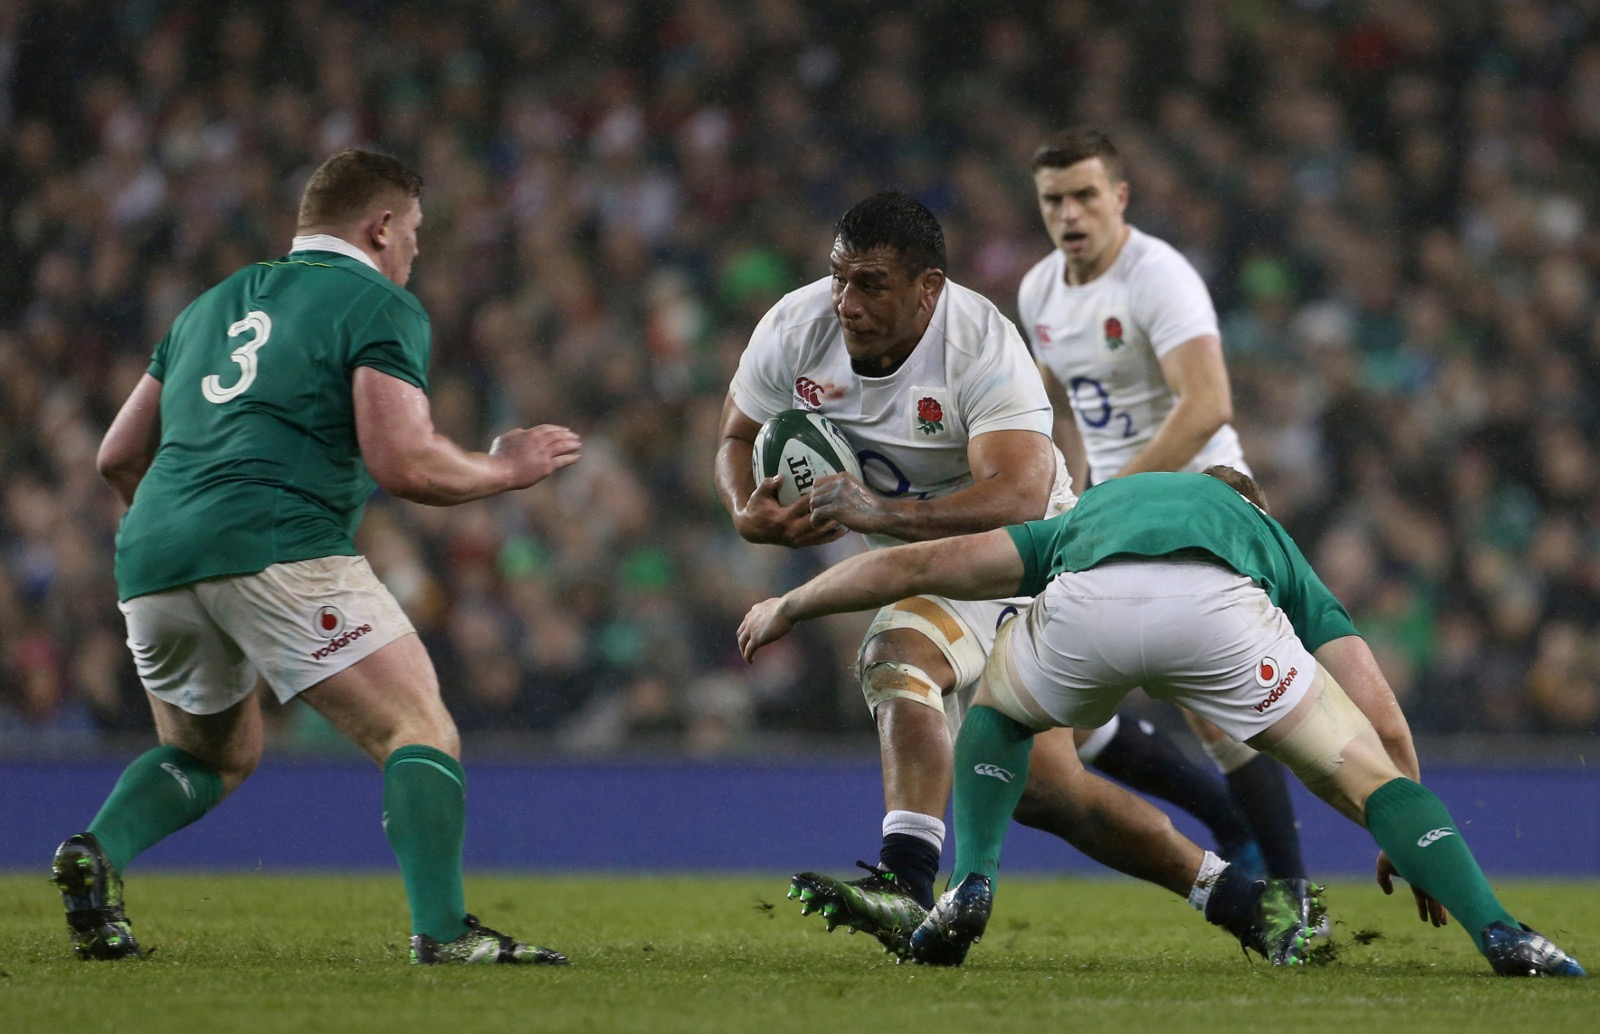 England's Billy Vunipola is tackled by Ireland's Peter O'Mahony during their Six Nations rugby union international match at the Aviva stadium in Dublin, Ireland, Saturday, March 18. (AP Photo/Peter Morrison)